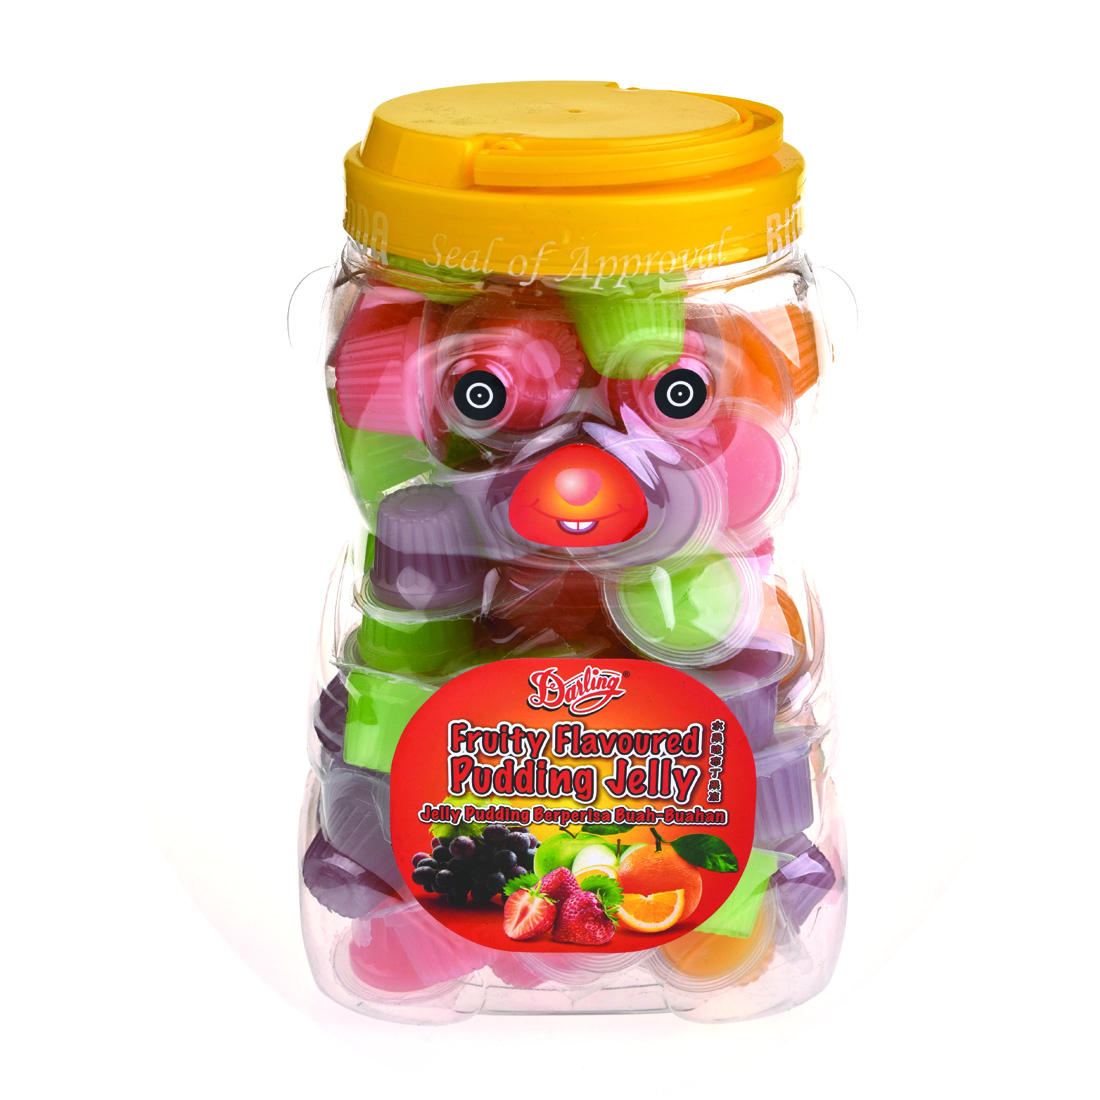 Darling Mixed Fruit Flavoured Pudding Jelly